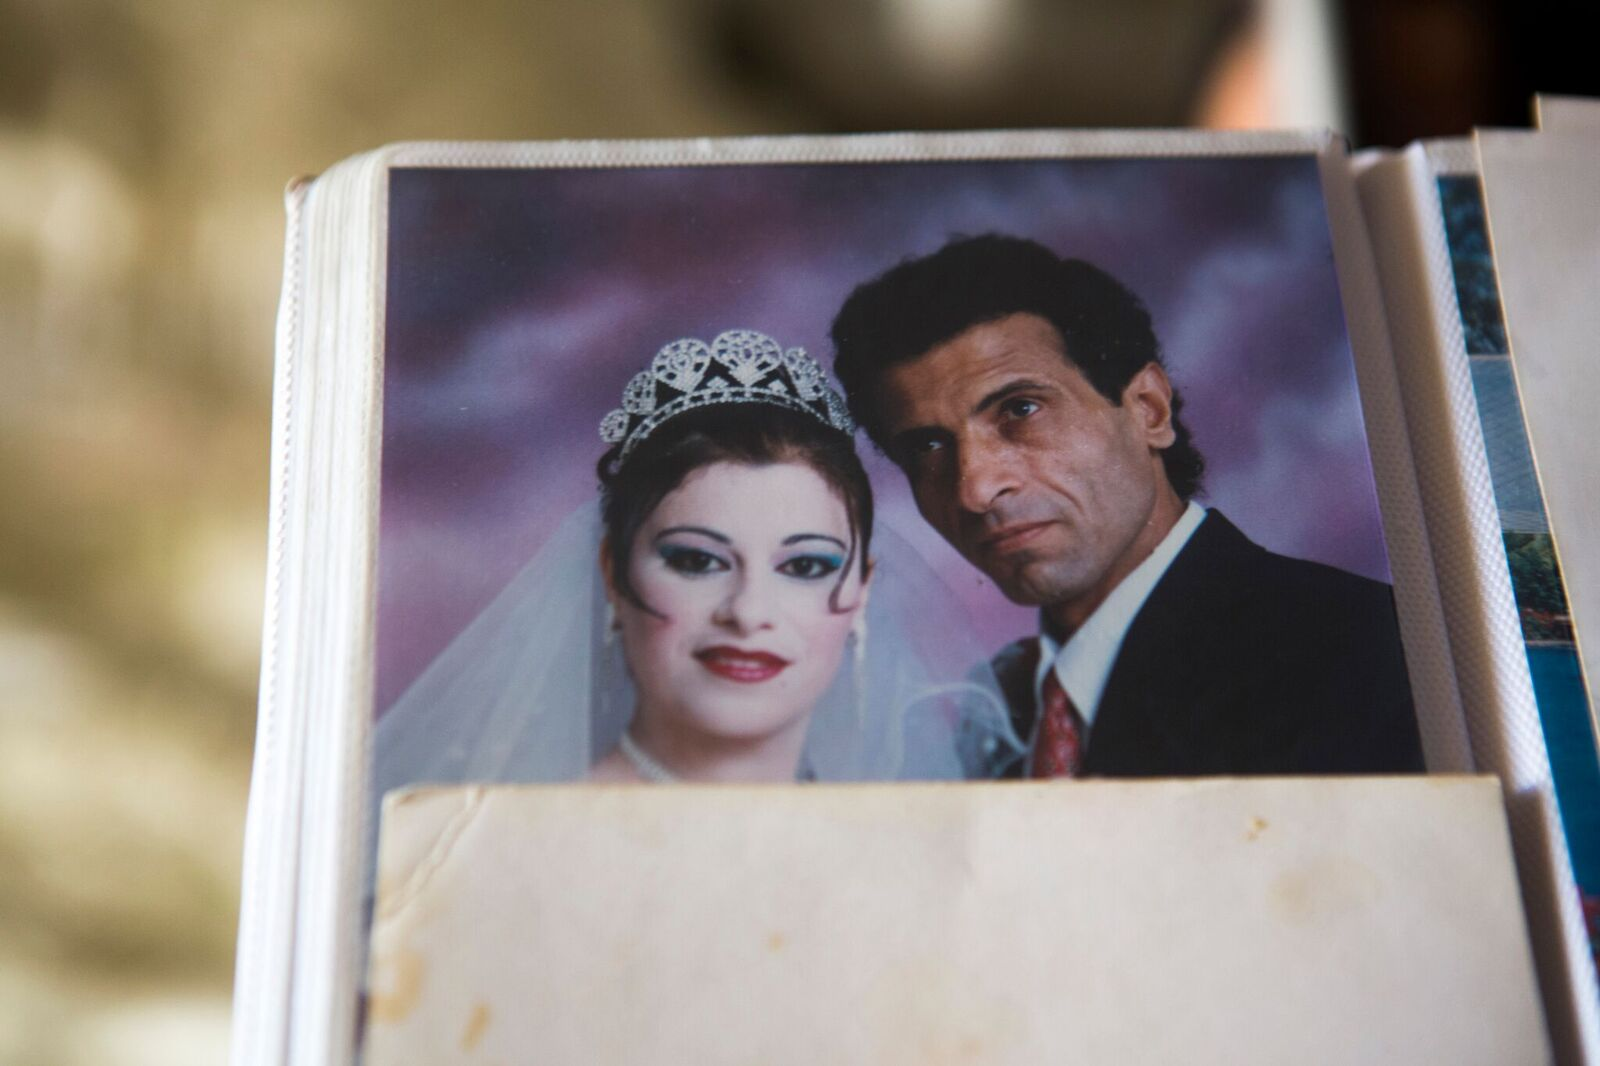 Ibrahim and Taghrid on their wedding day.